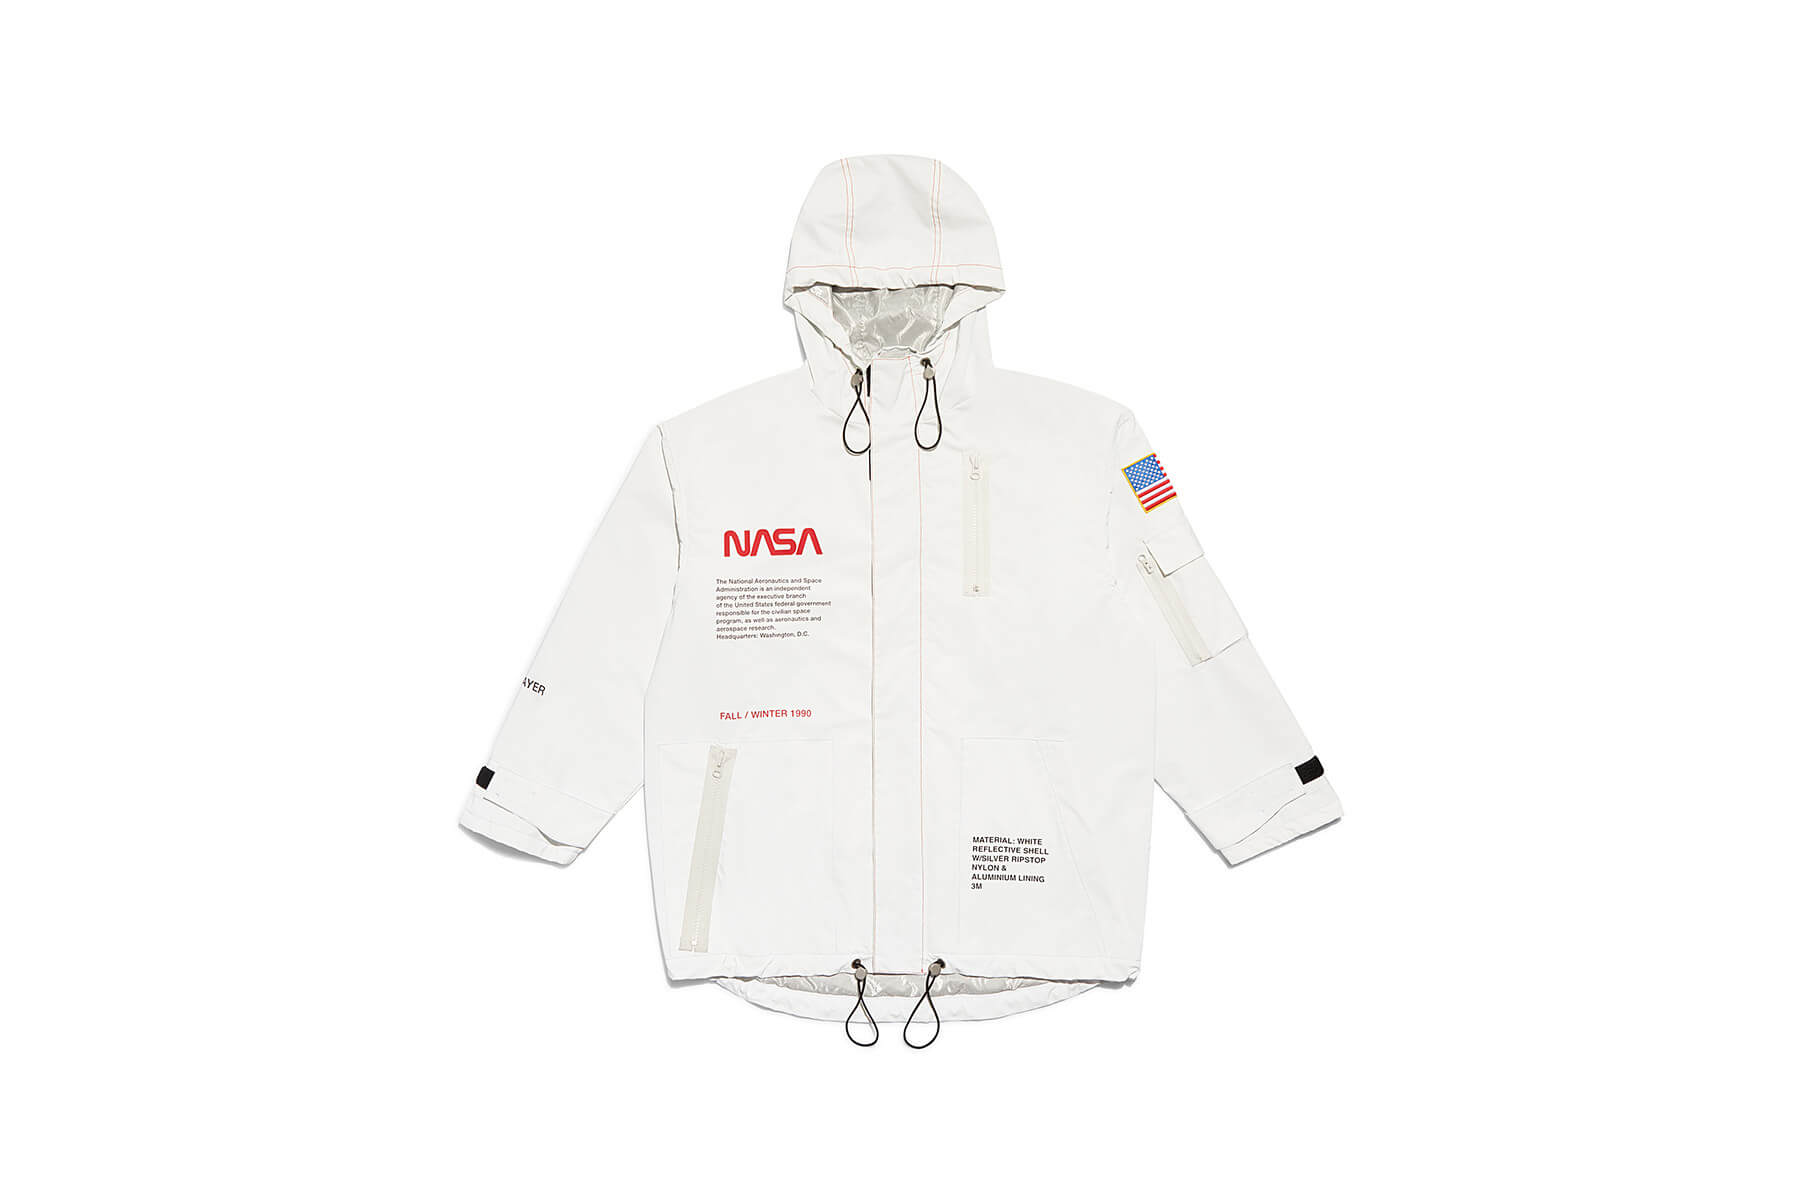 Heron Preston x NASA capsule collection